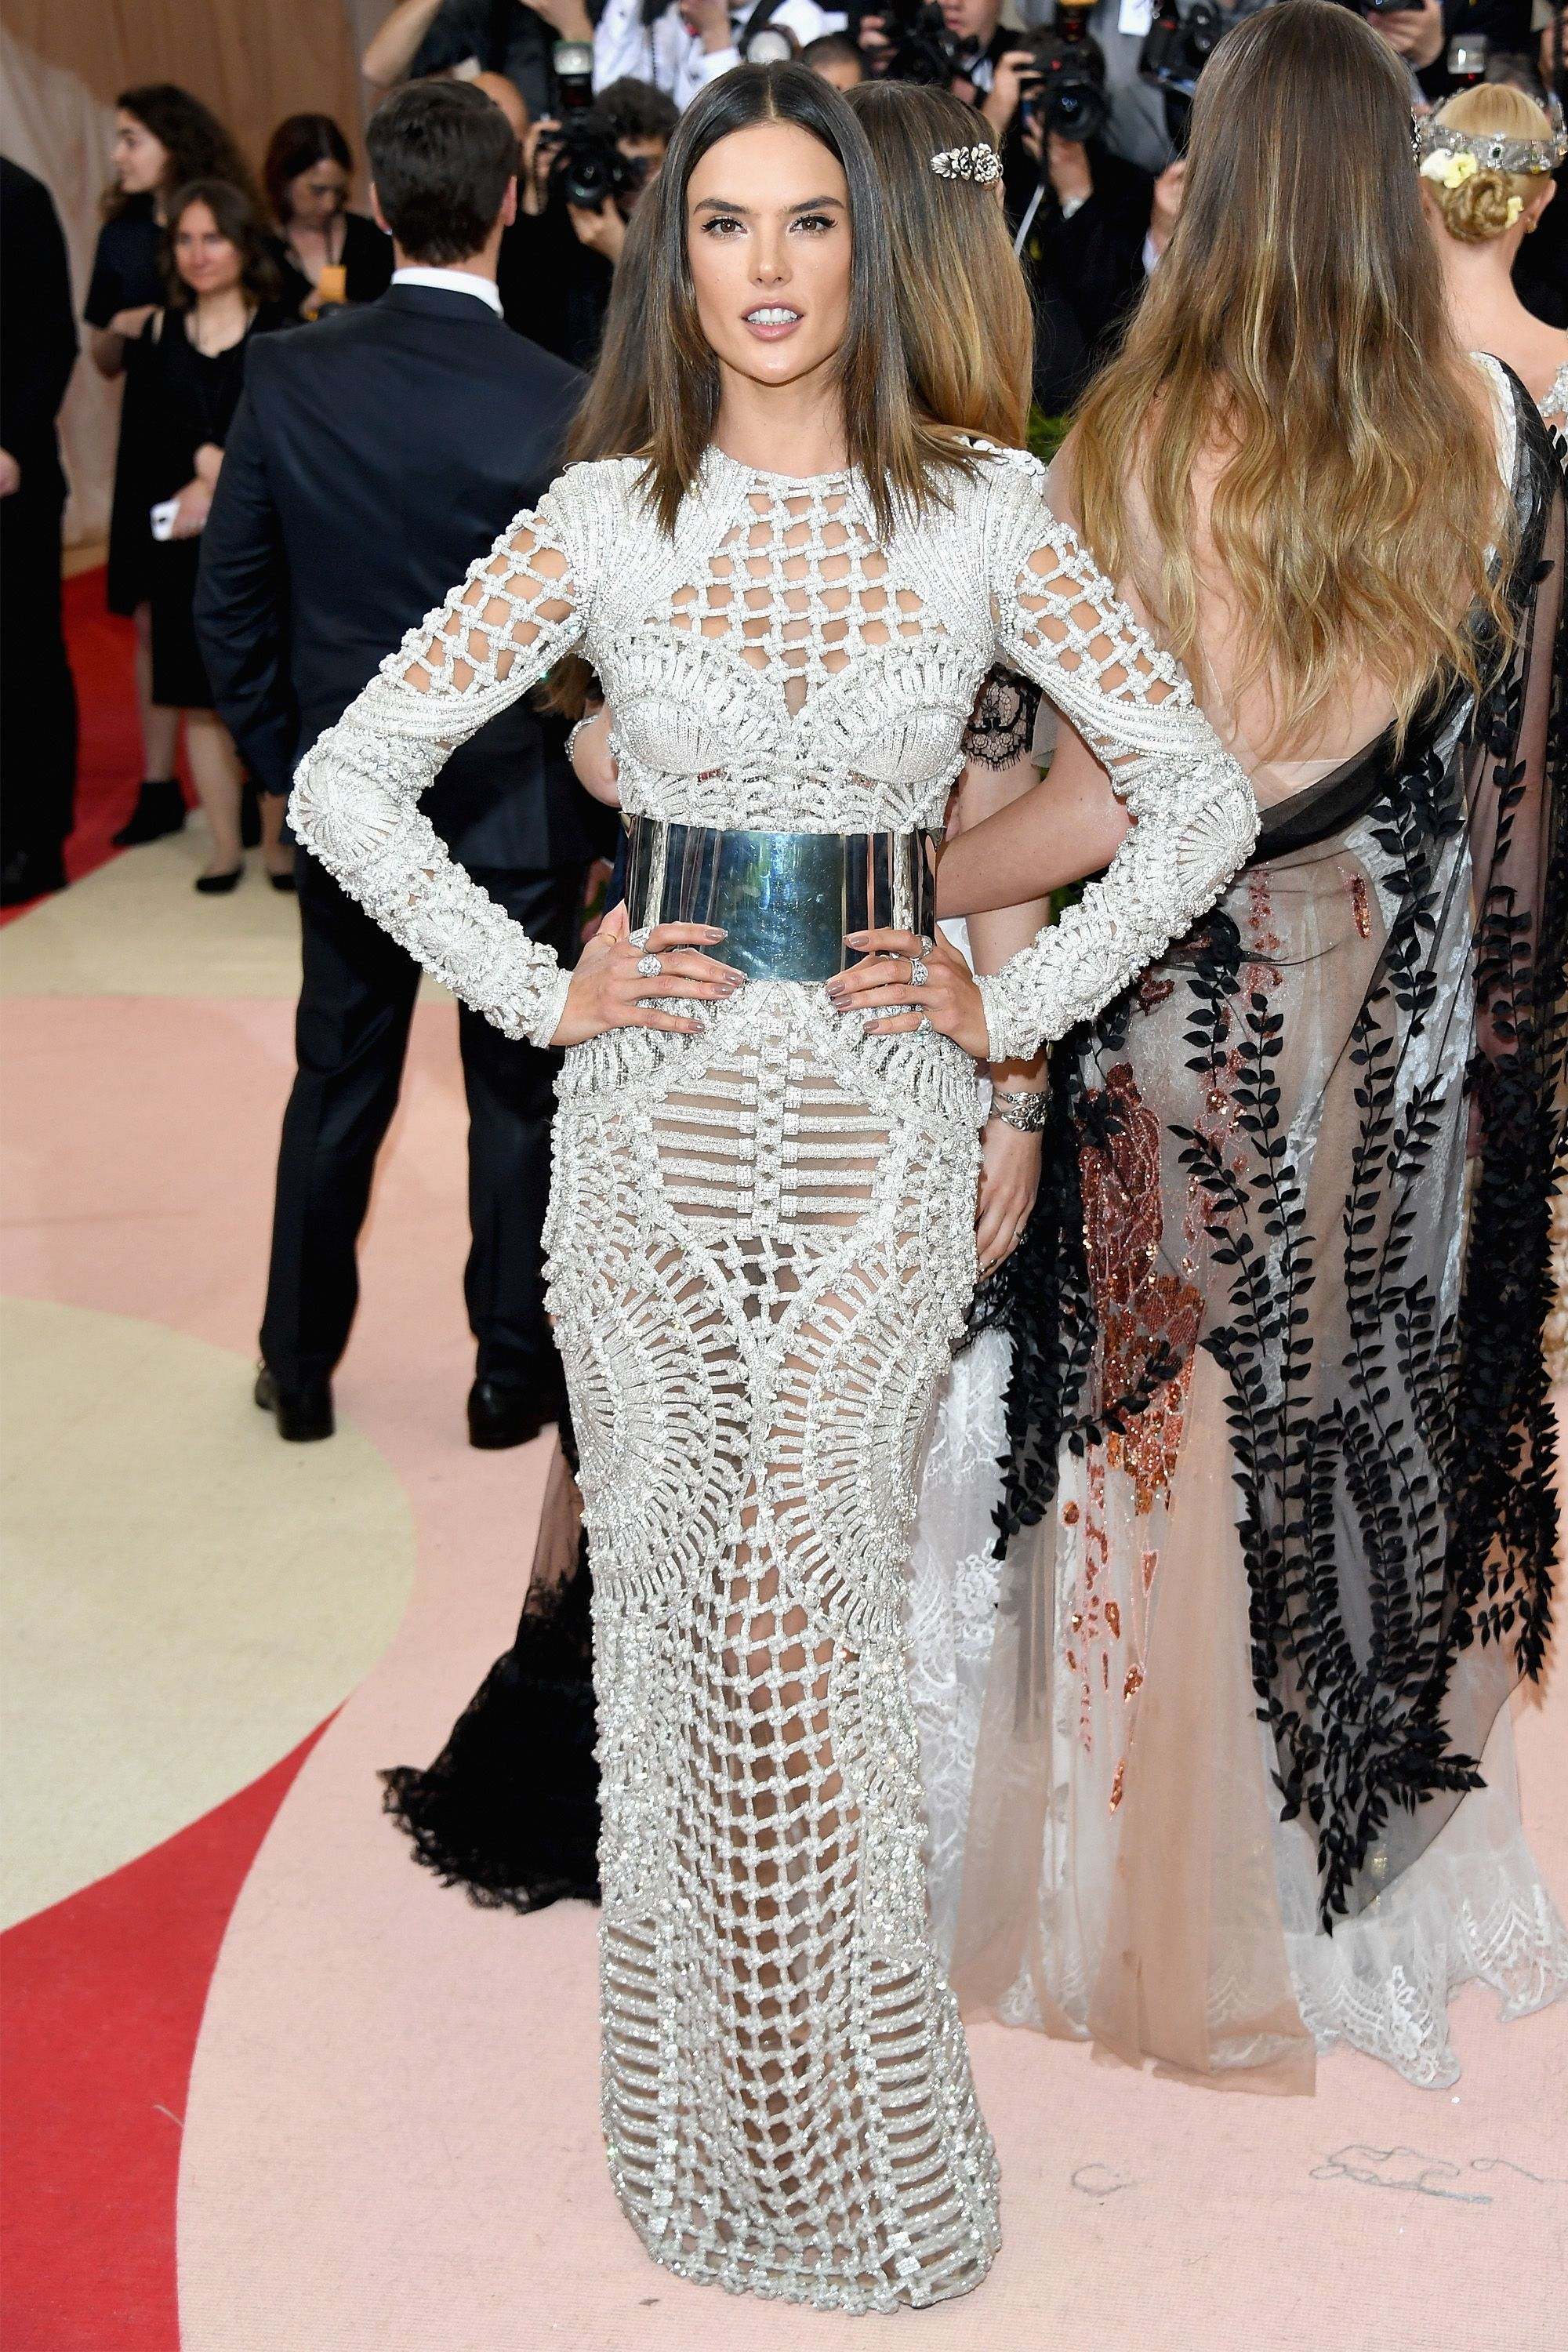 545ab0f393 Alessandra Ambrosio at the 2016 Met Gala in Balmain